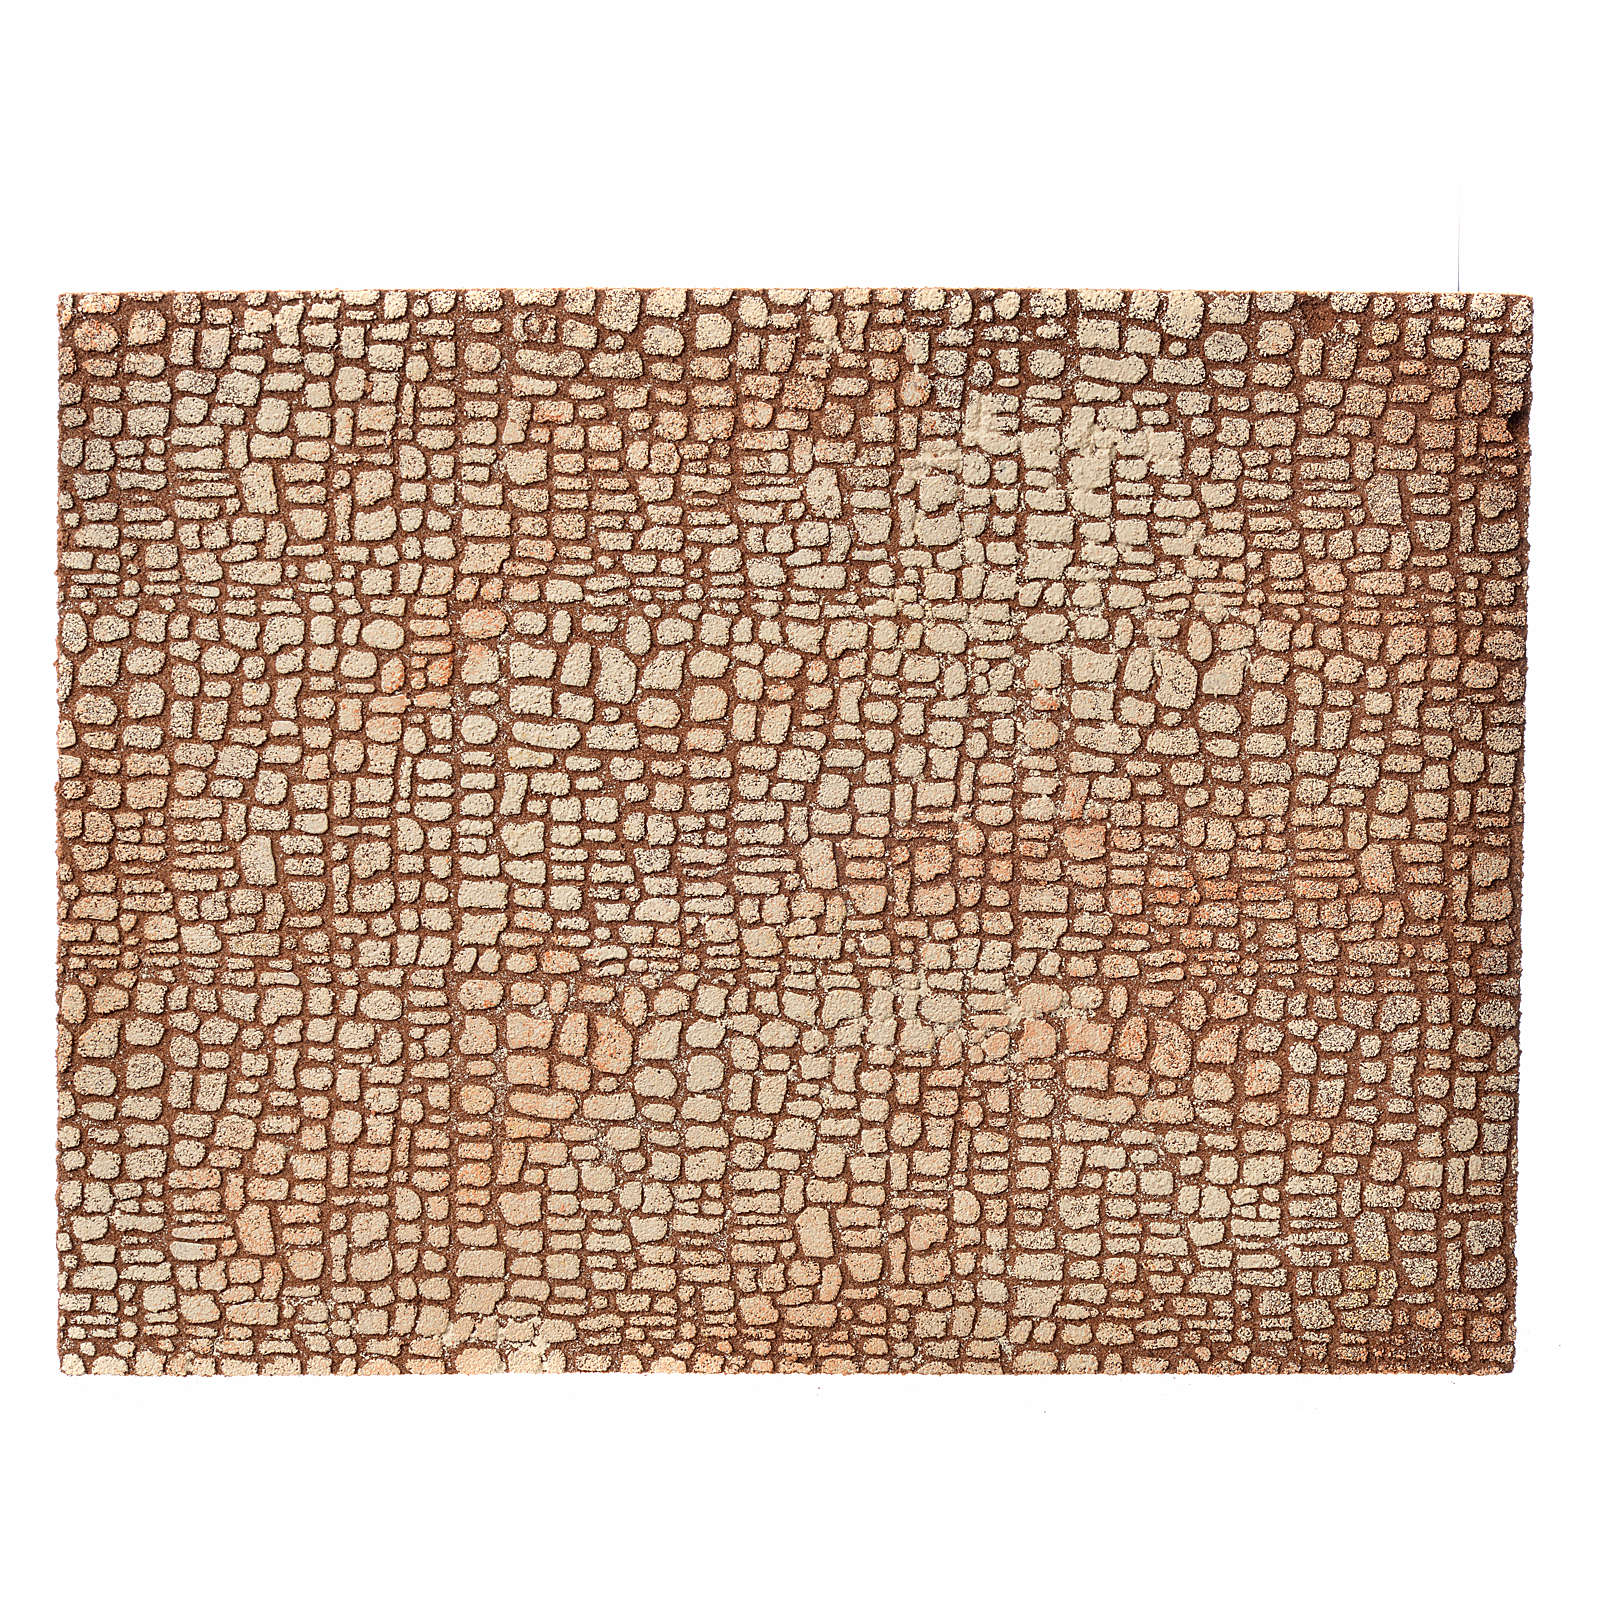 Nativity scene backdrop, cork panel with stone drawing 24,5x33cm 4